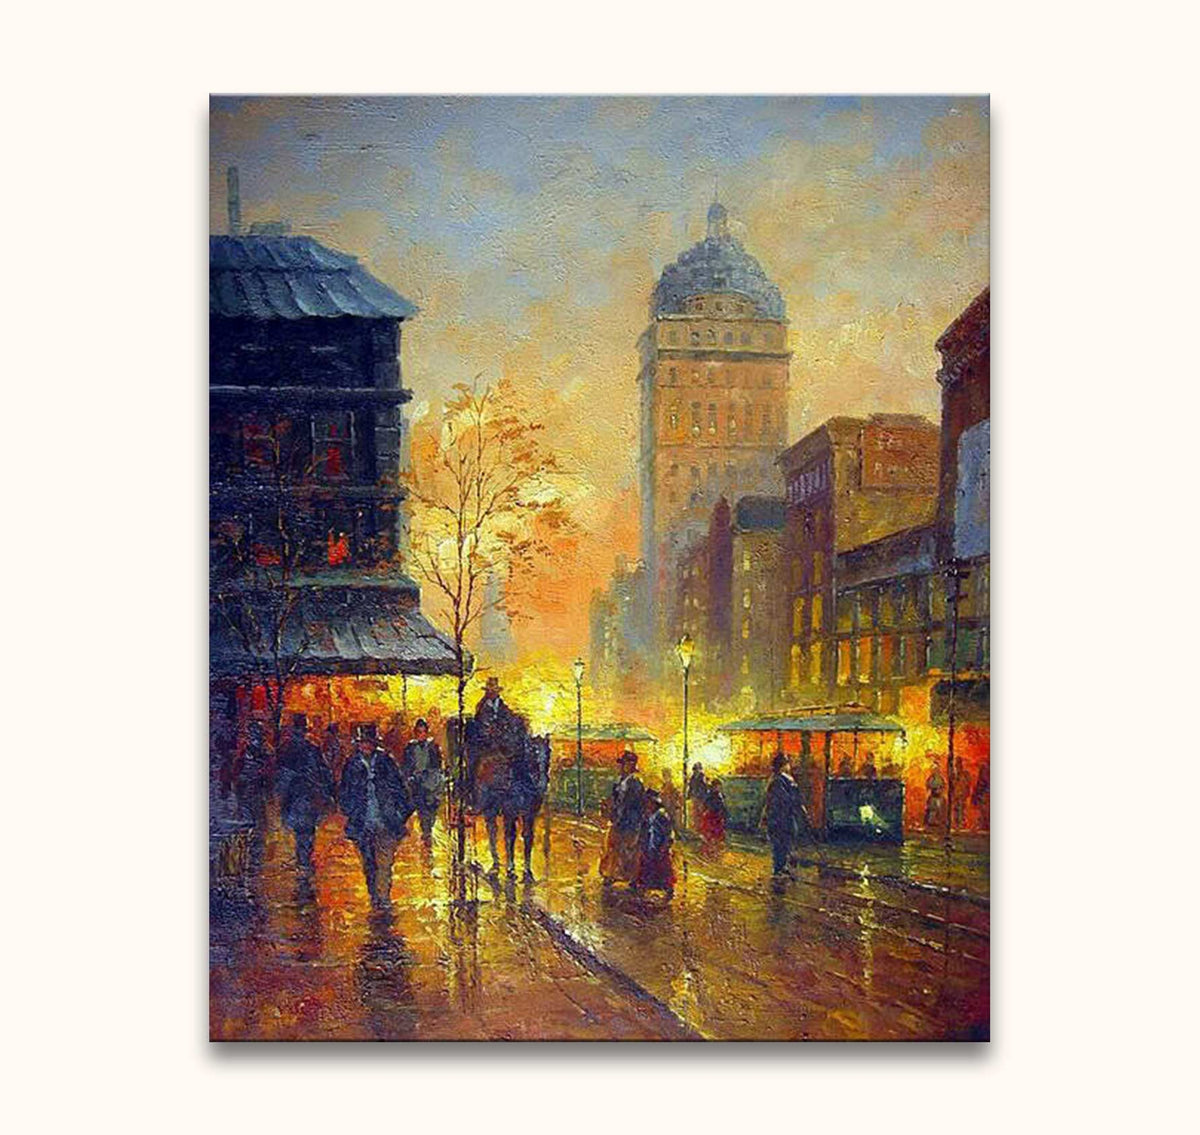 Sunset in Paris - Olieverf op canvas